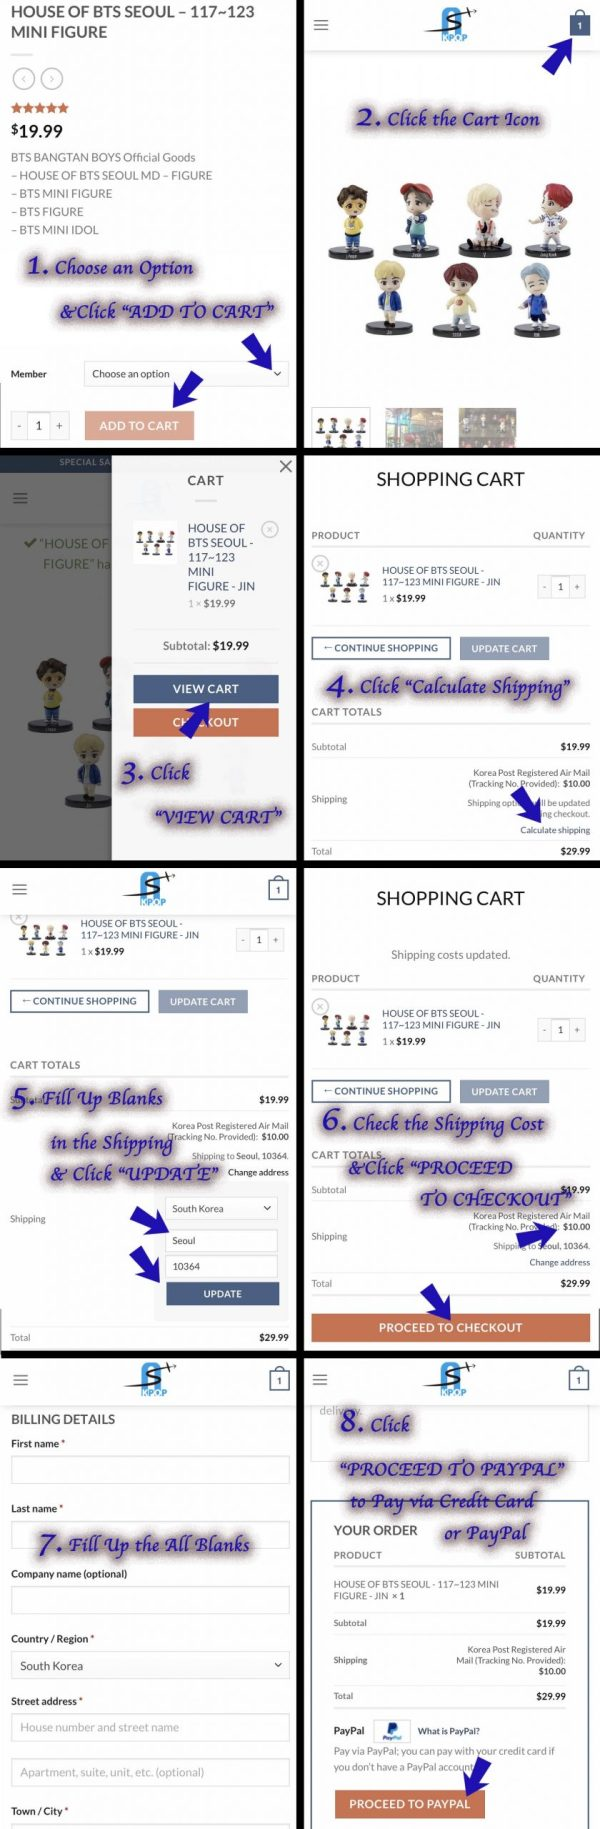 How to check the shipping cost.